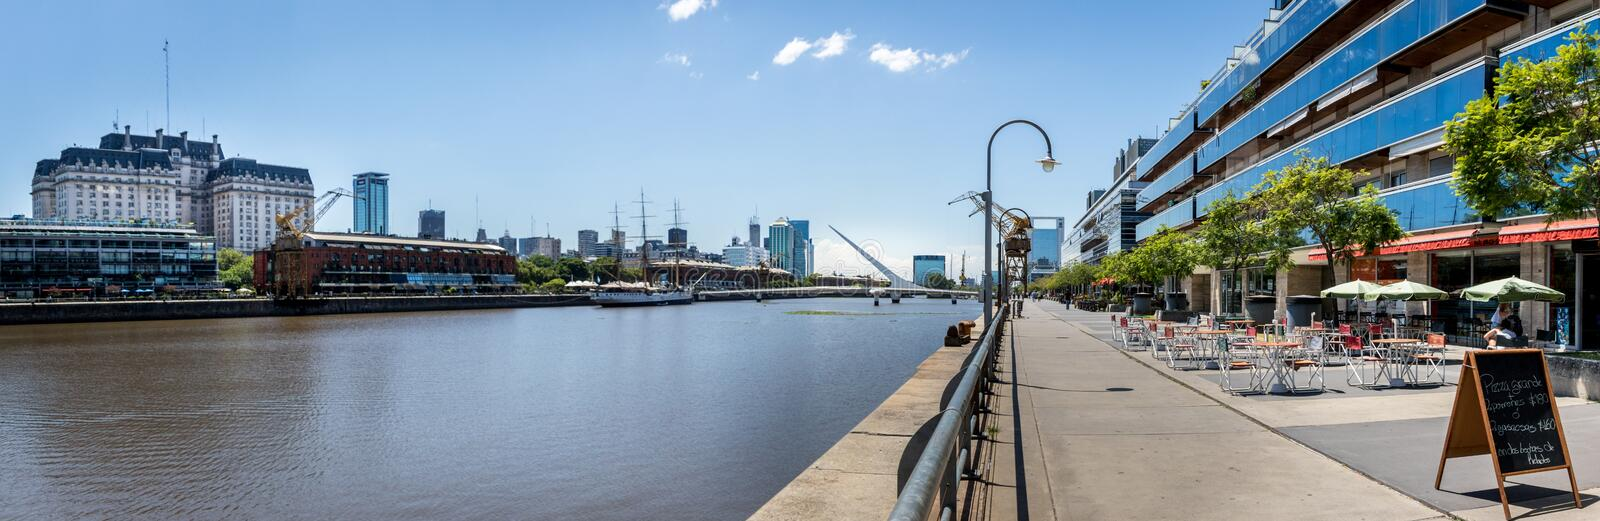 Panoramic View of Puerto Madero - Buenos Aires, Argentina. Panoramic View of Puerto Madero in Buenos Aires, Argentina royalty free stock photo